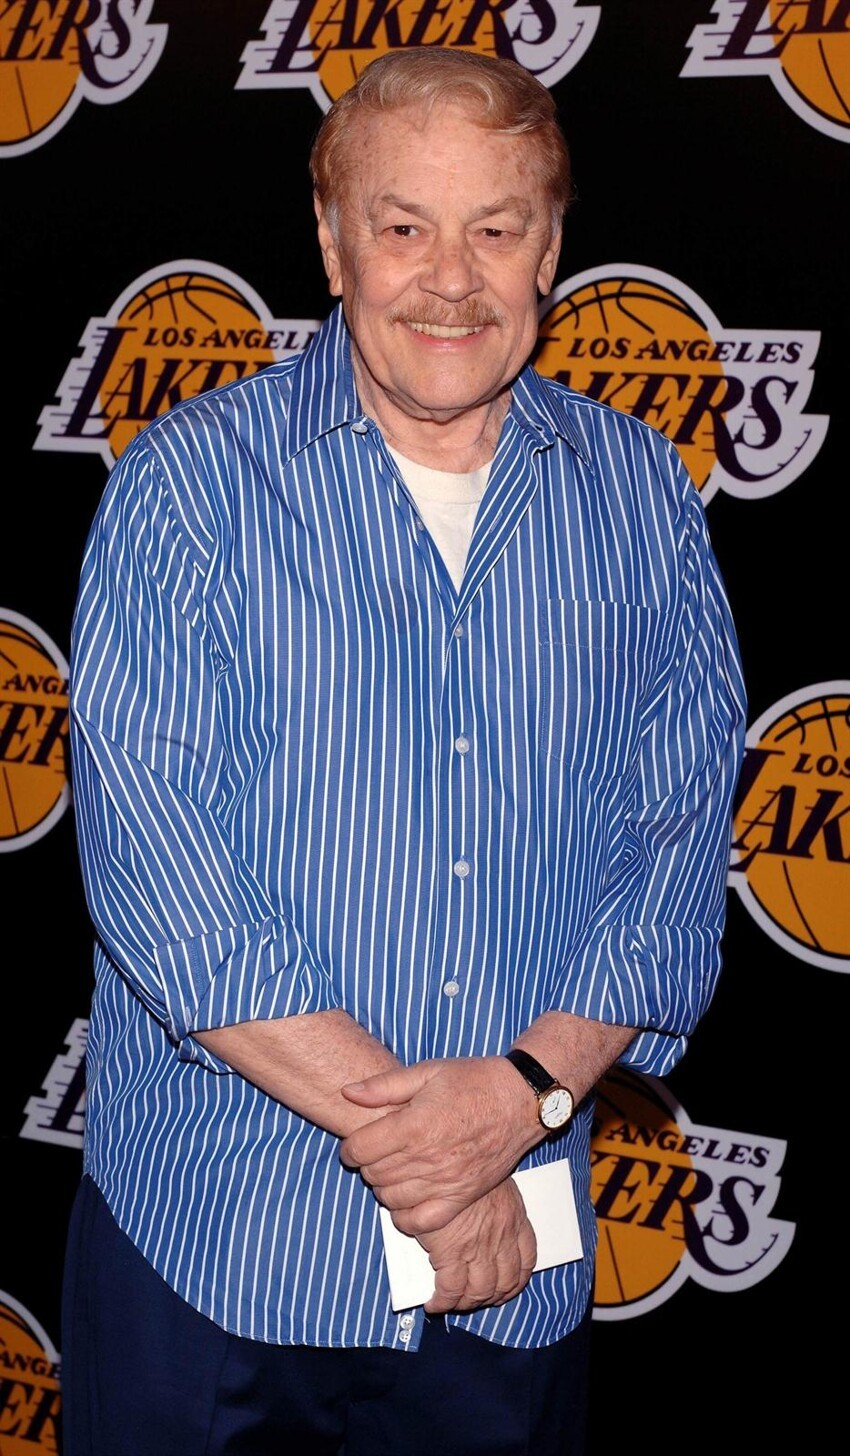 Lakers Owner Jerry Buss Passes Away